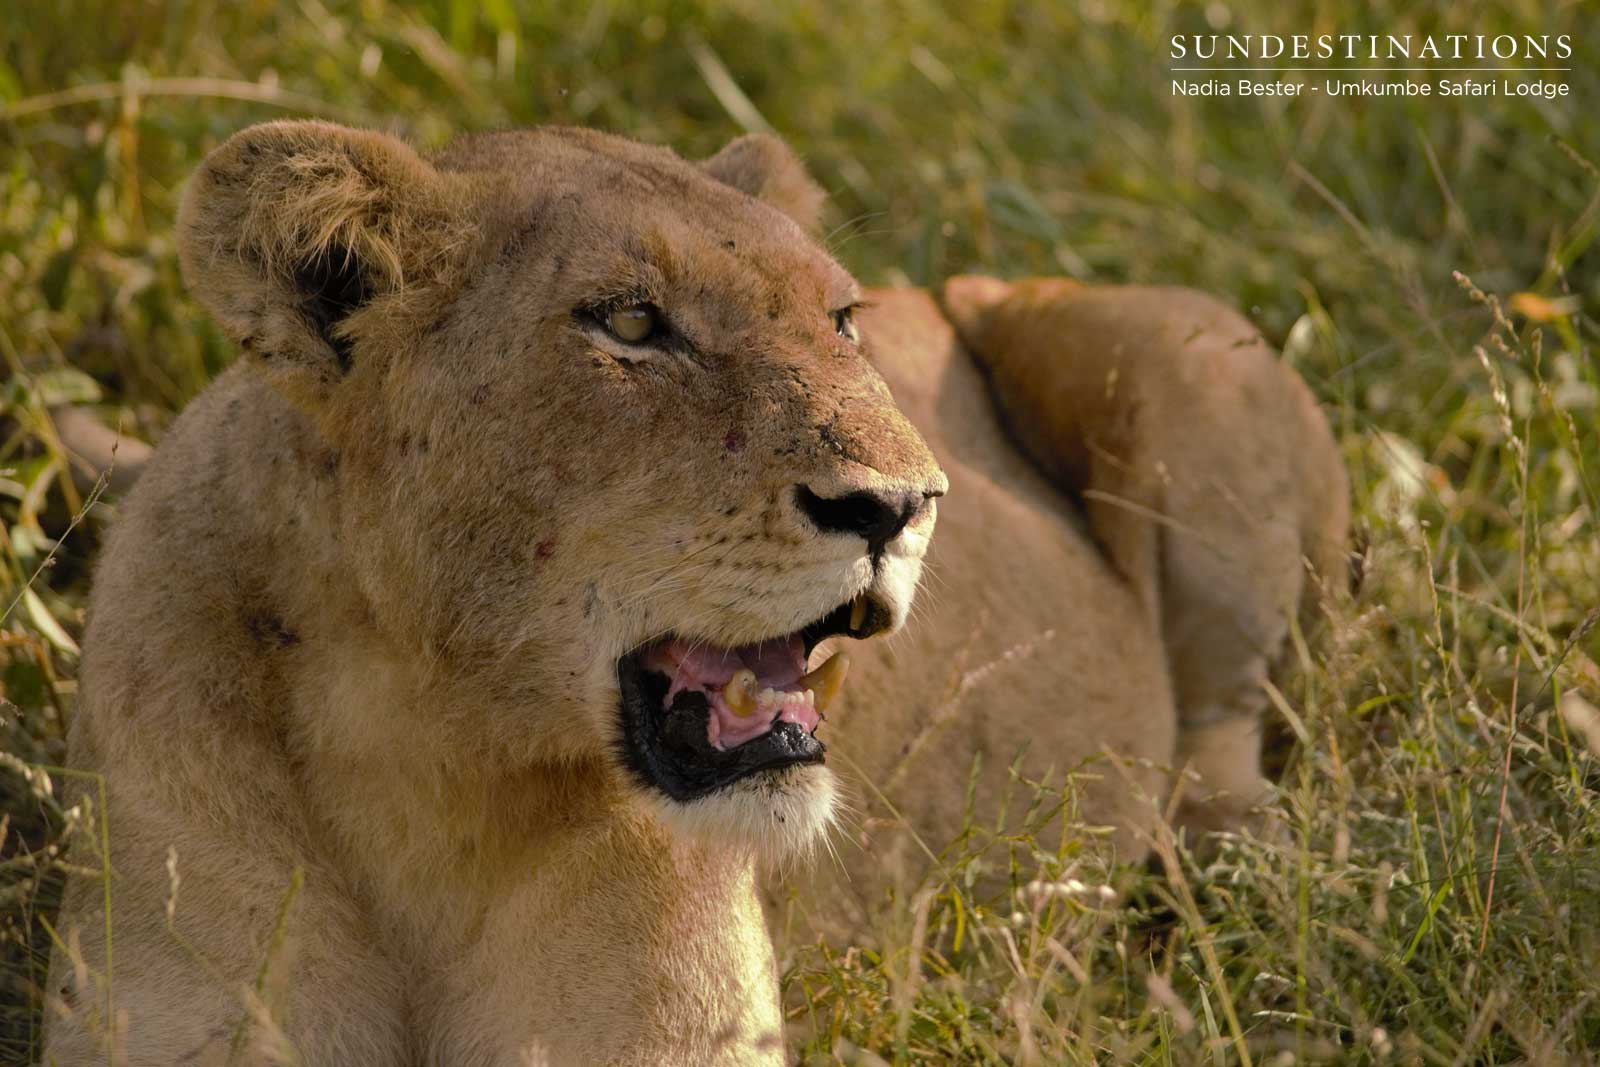 Spart Lioness at Umkumbe